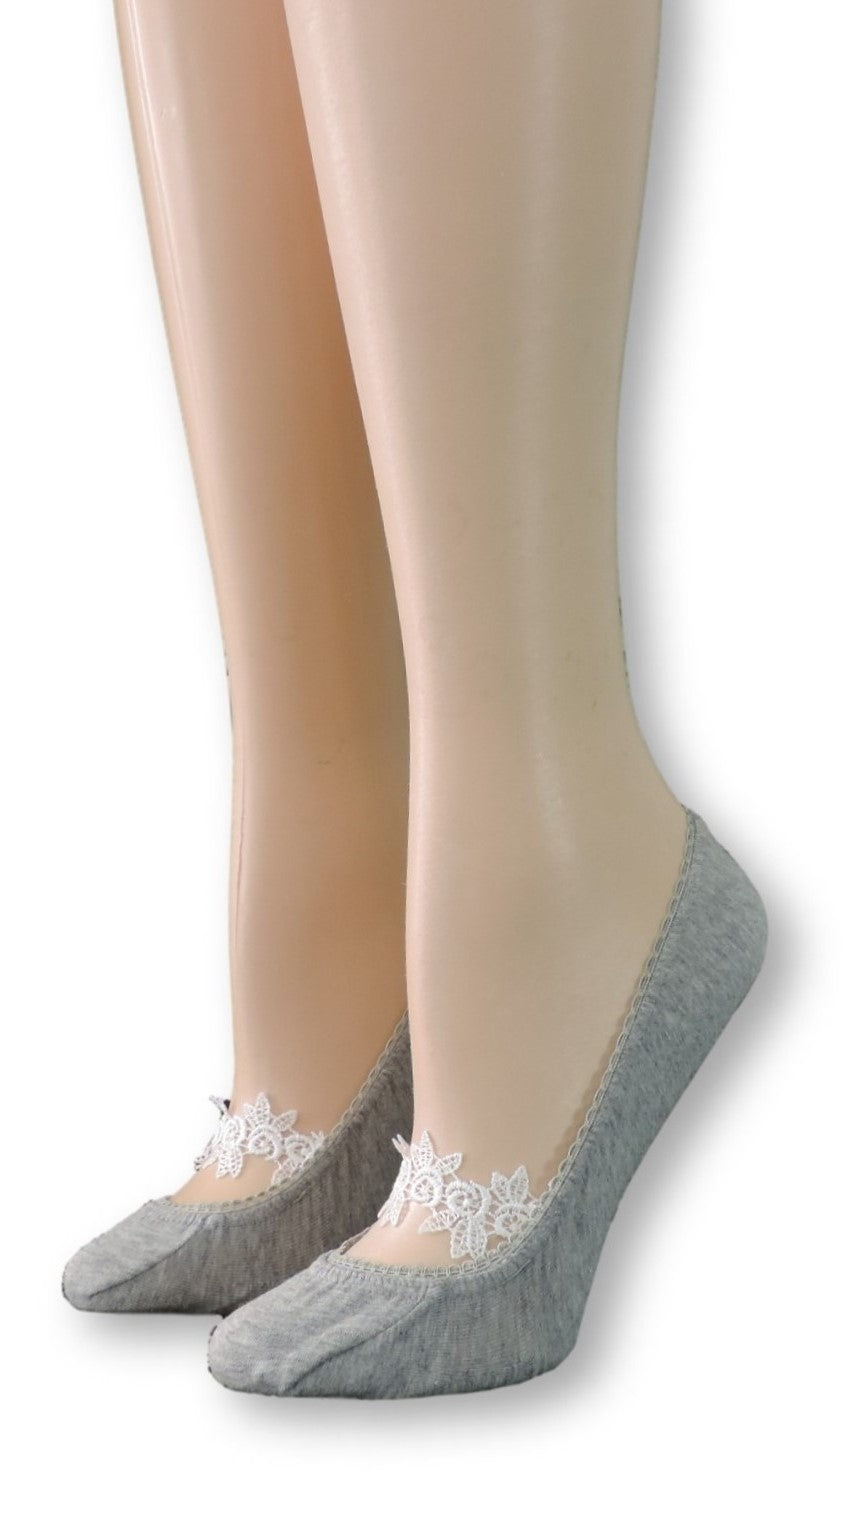 Gray Ankle Socks with White Floral Lace